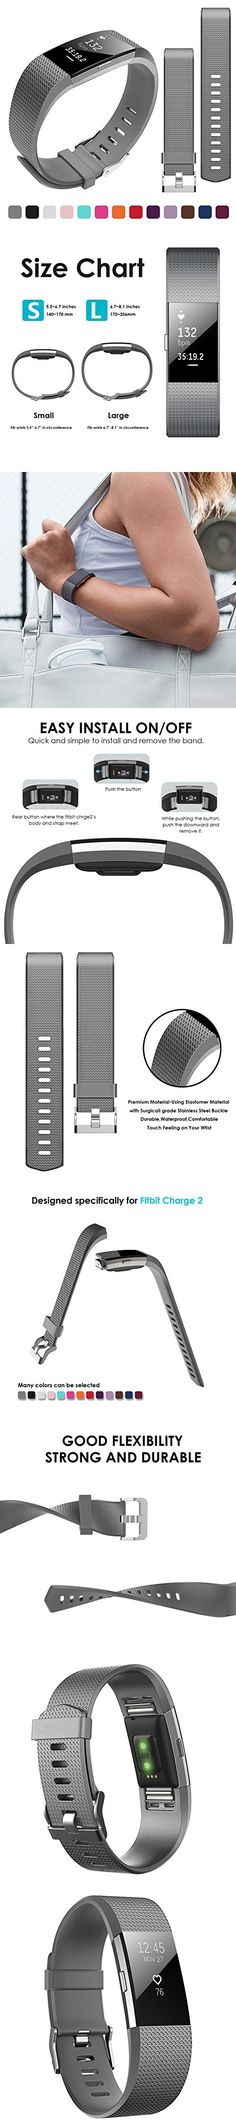 Bepack Band for Fitbit Charge 2 , Soft TPU Adjustable Sport Strap Band for Fitbit Charge 2 Smartwatch Heart Rate Fitness Wristband